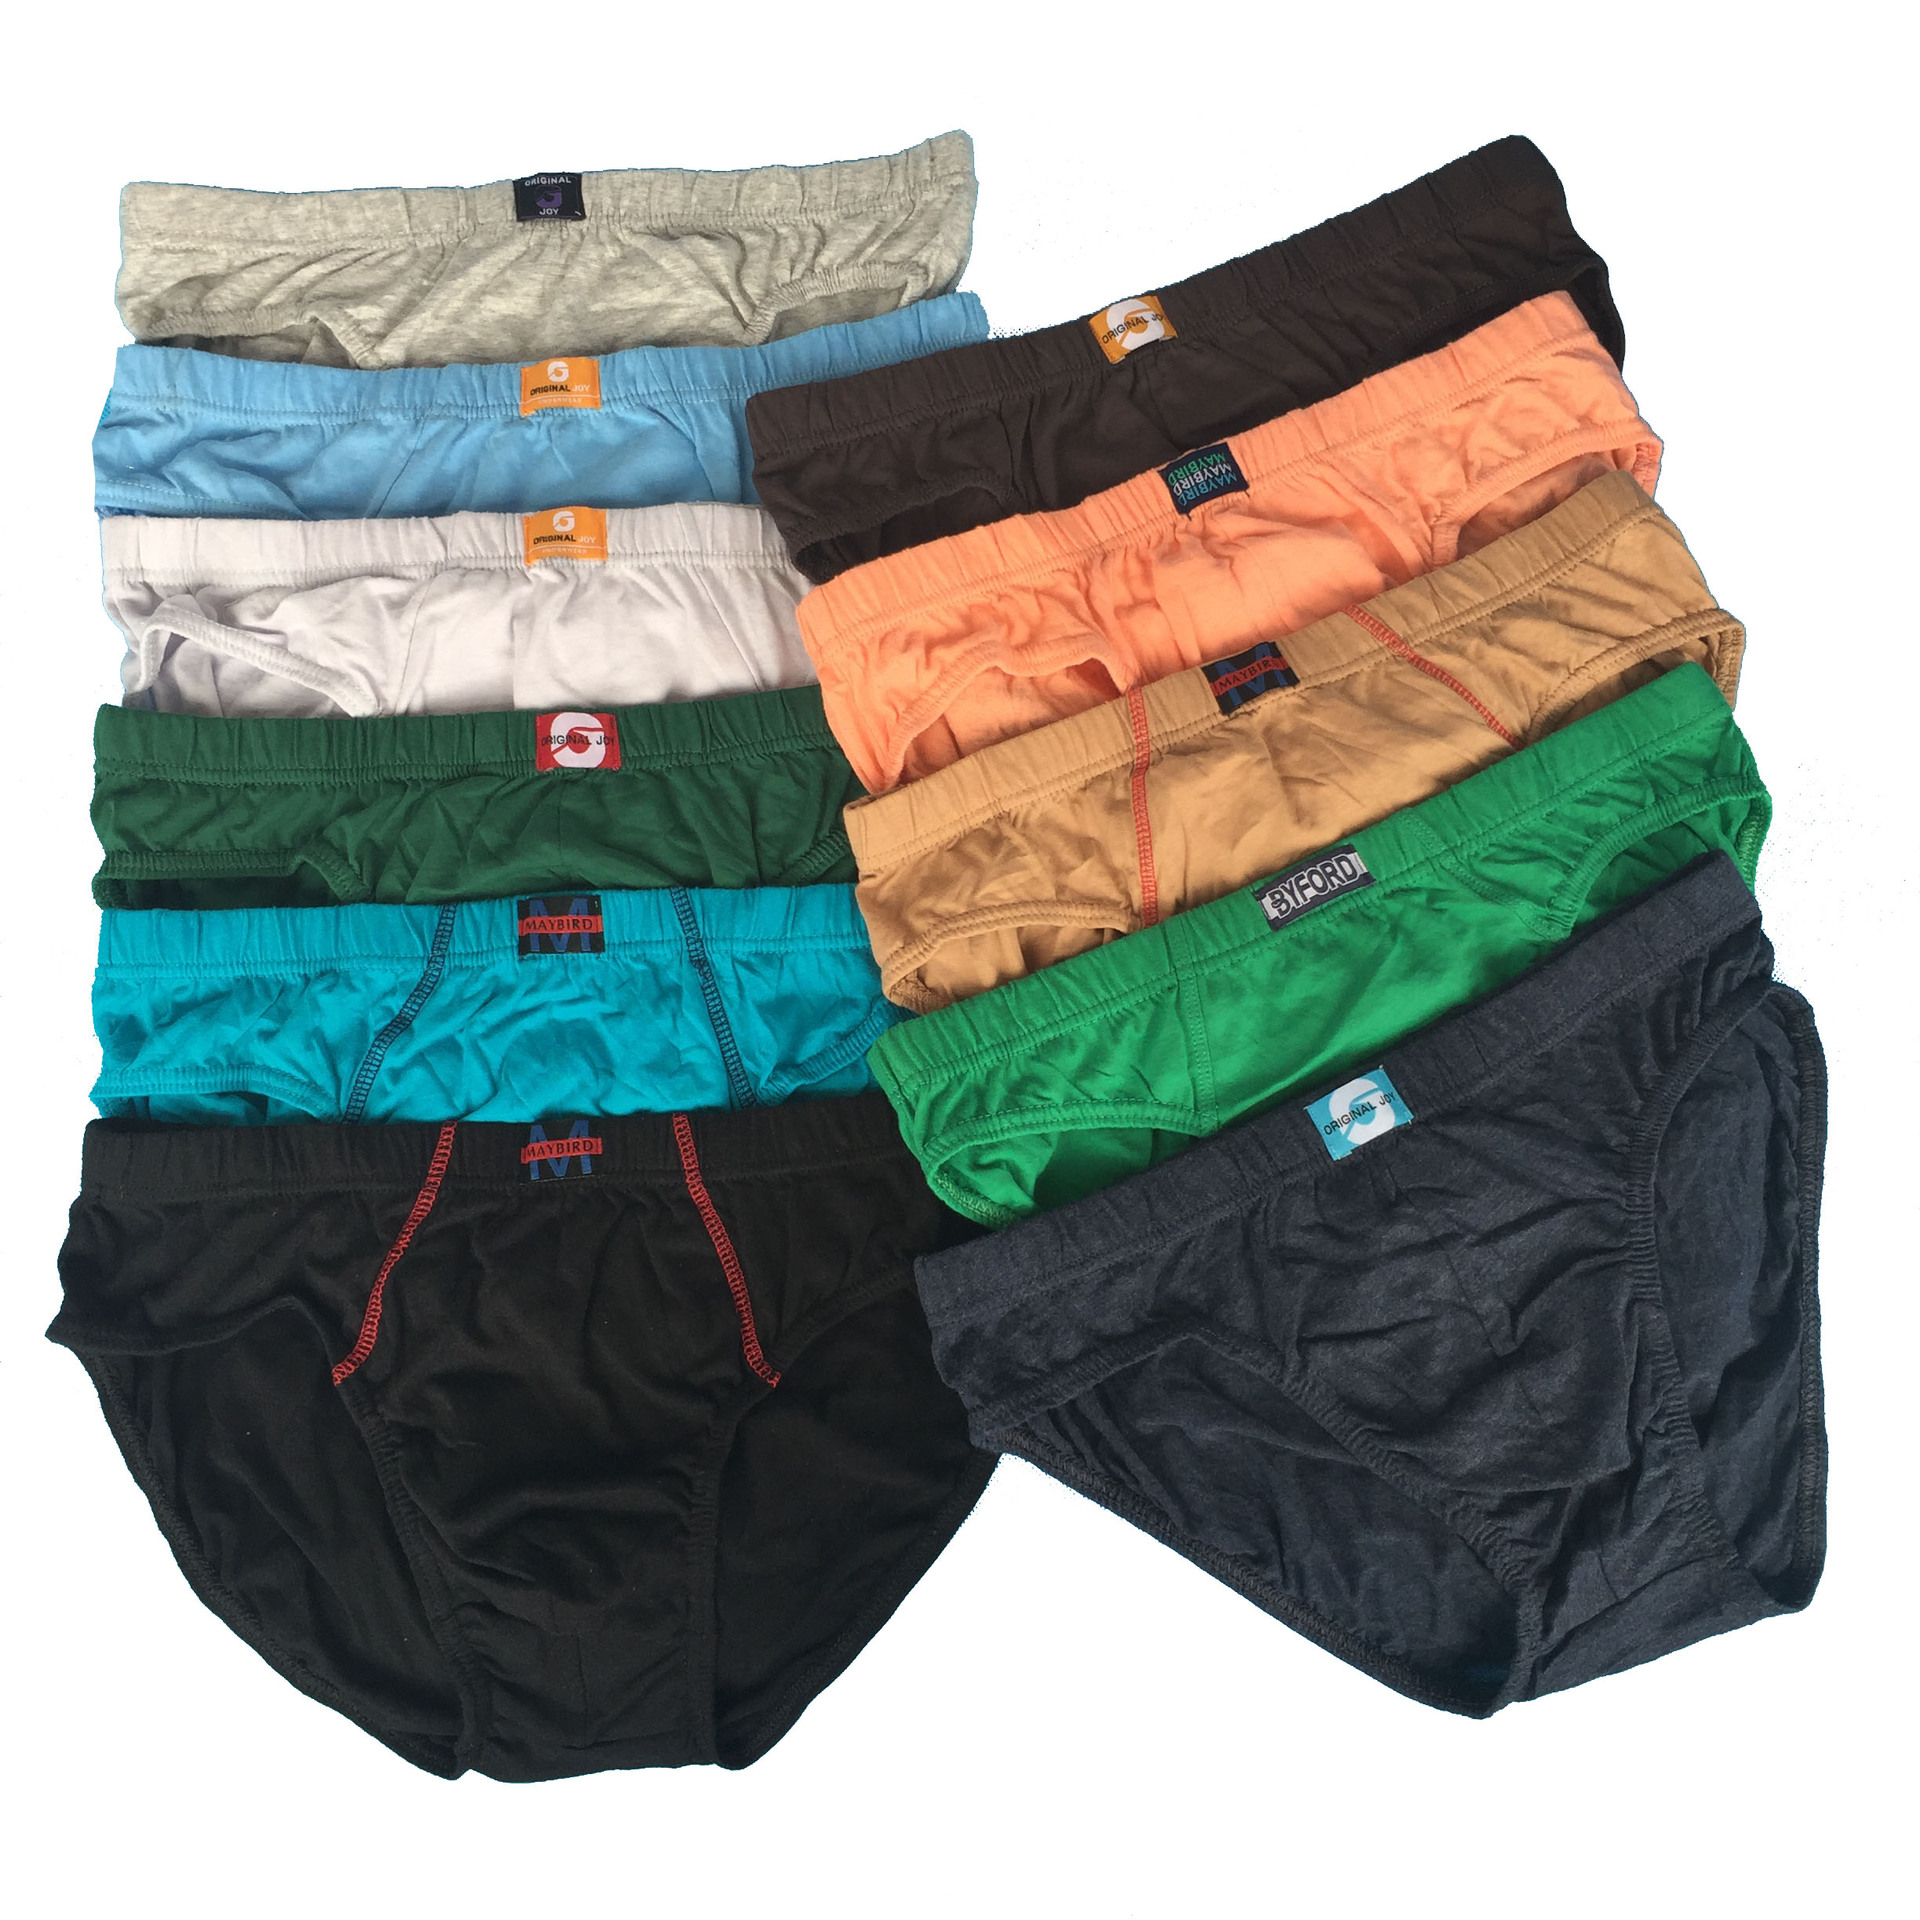 3pcs/Lot Man Gentlemen Sexy Solid Panties Pants Briefs Shorts Underpants Underwear Cotton Briefs CGNK-JJ001